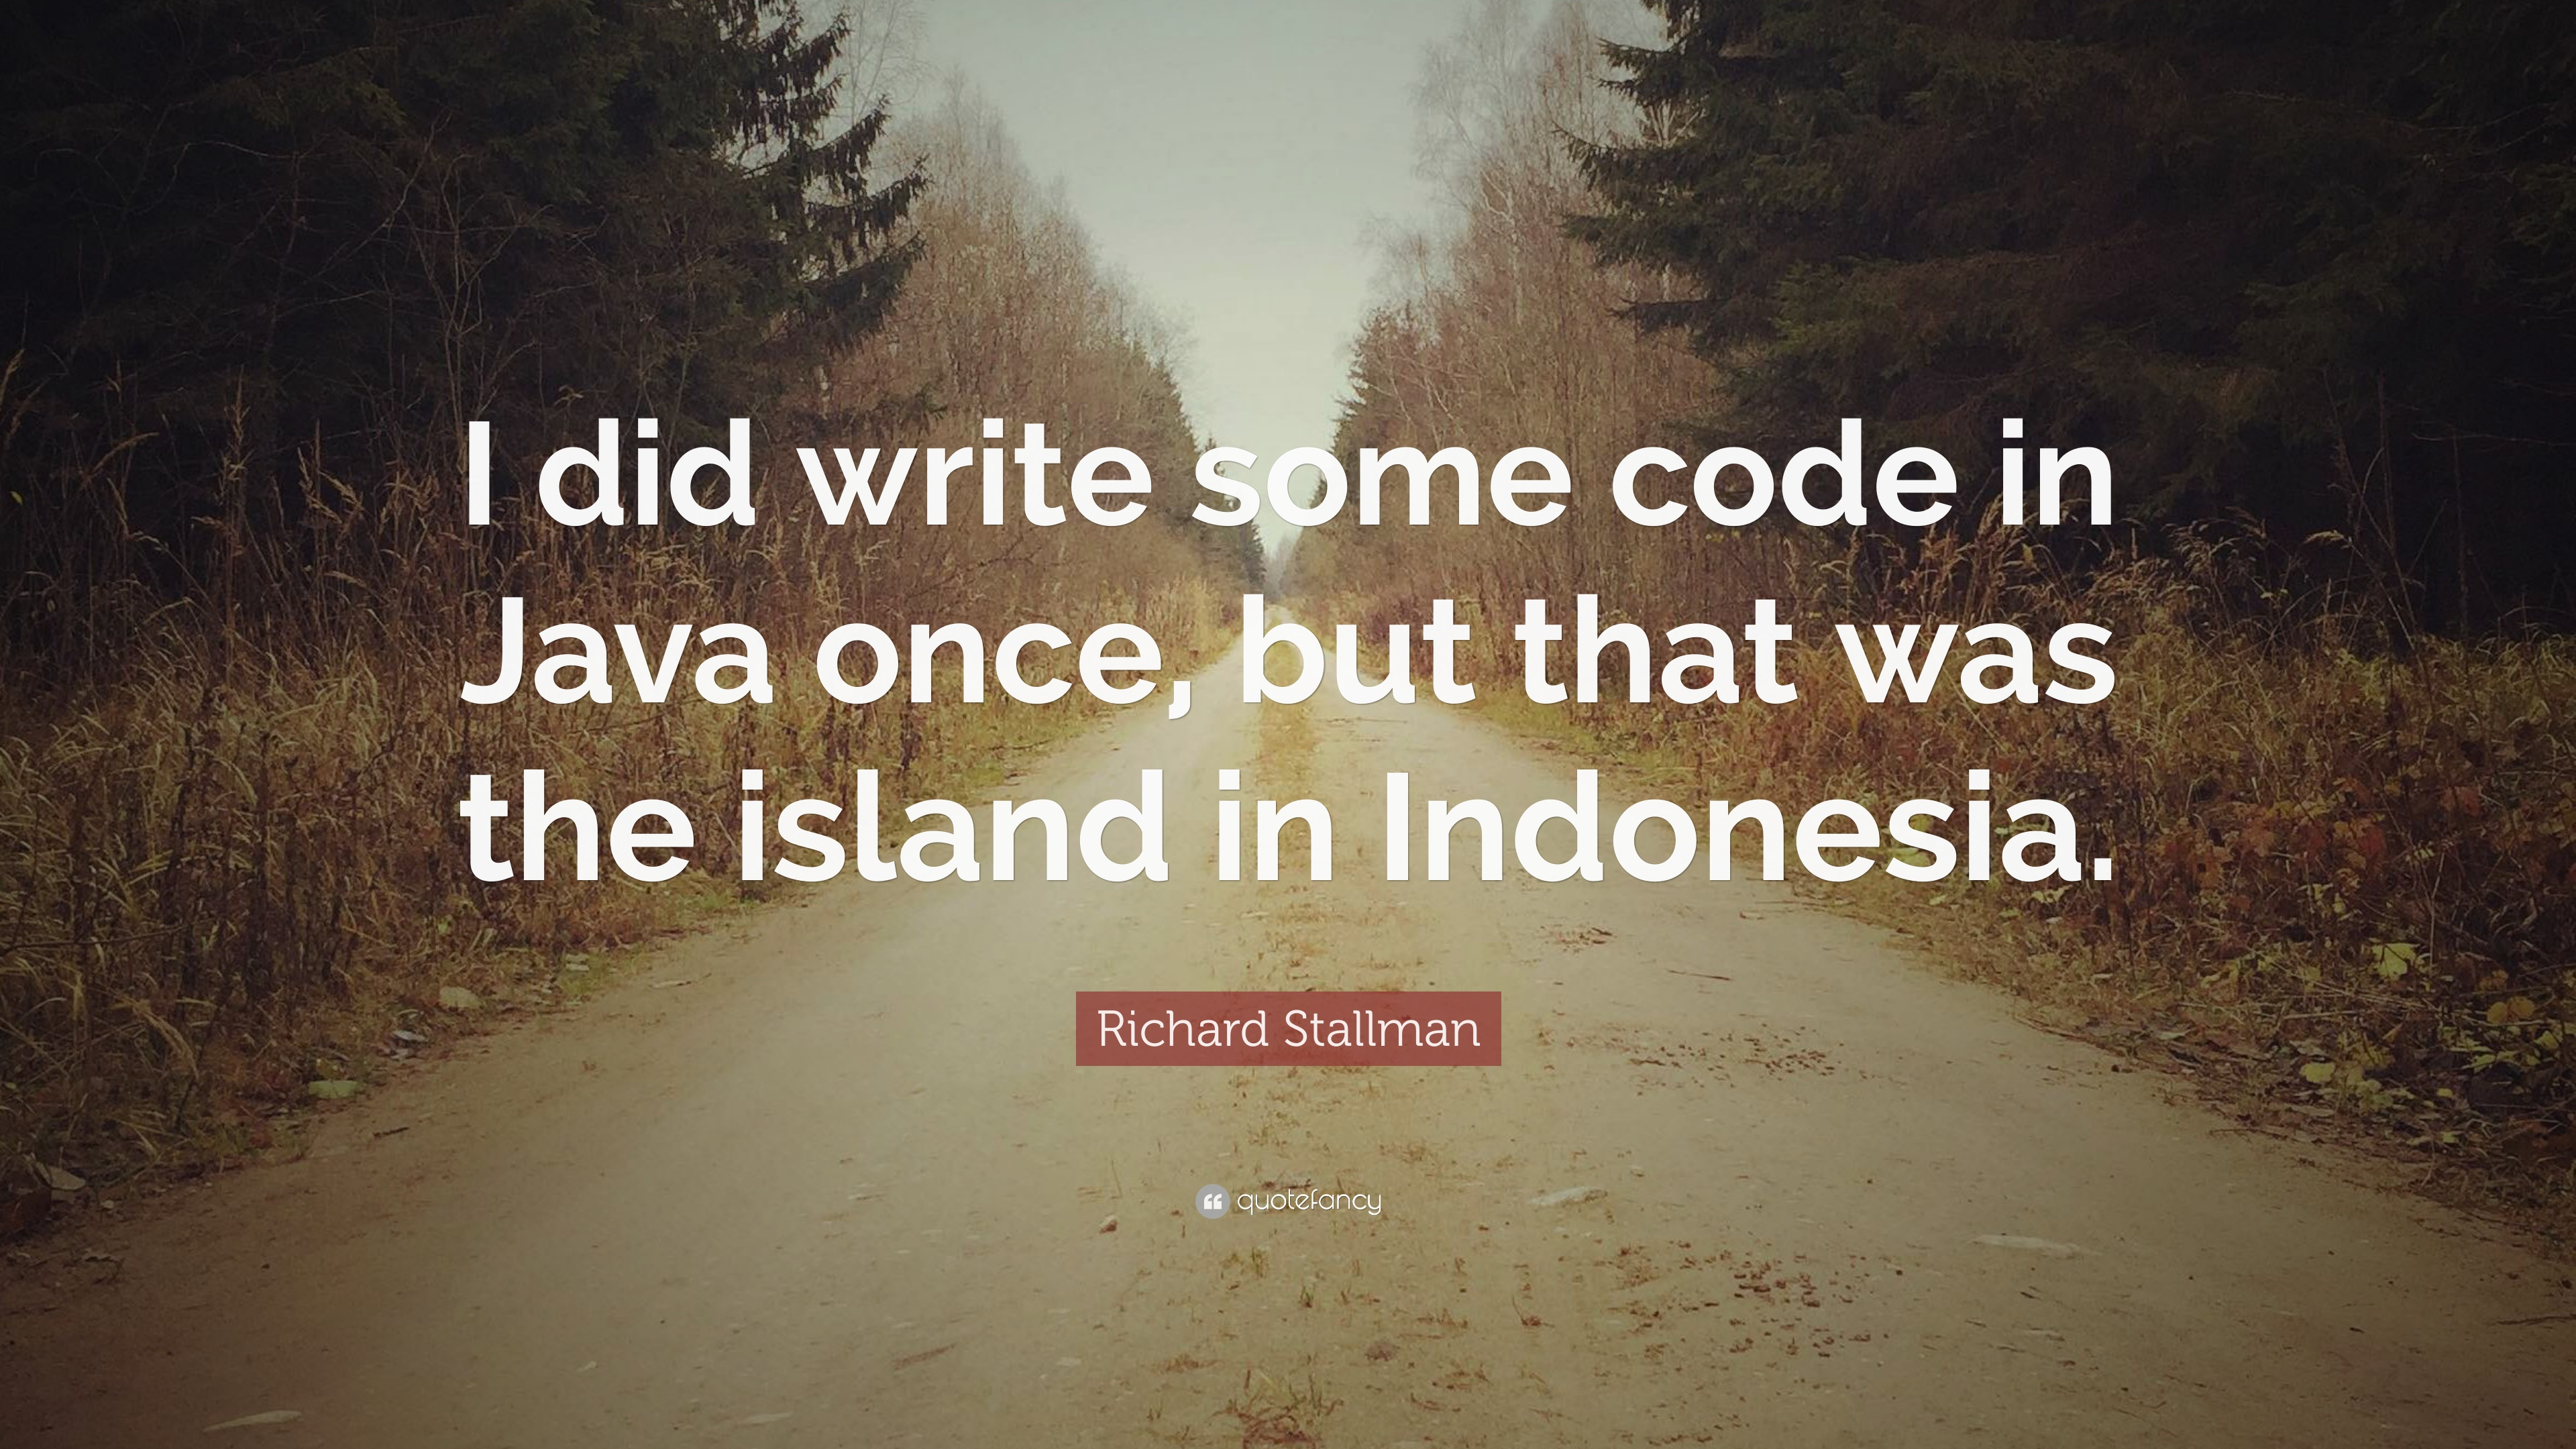 Richard stallman quote i did write some code in java once but that